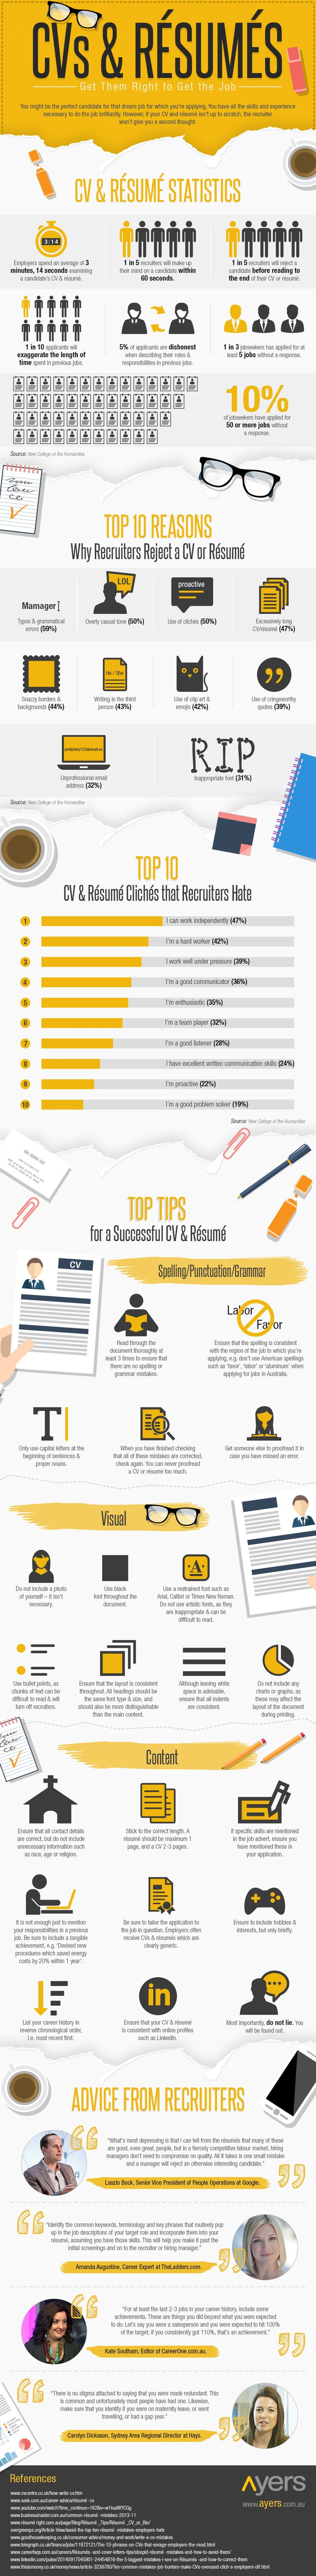 best ideas about get the job how to resume how the cvs resumes get them right to get the job infographic presents what is